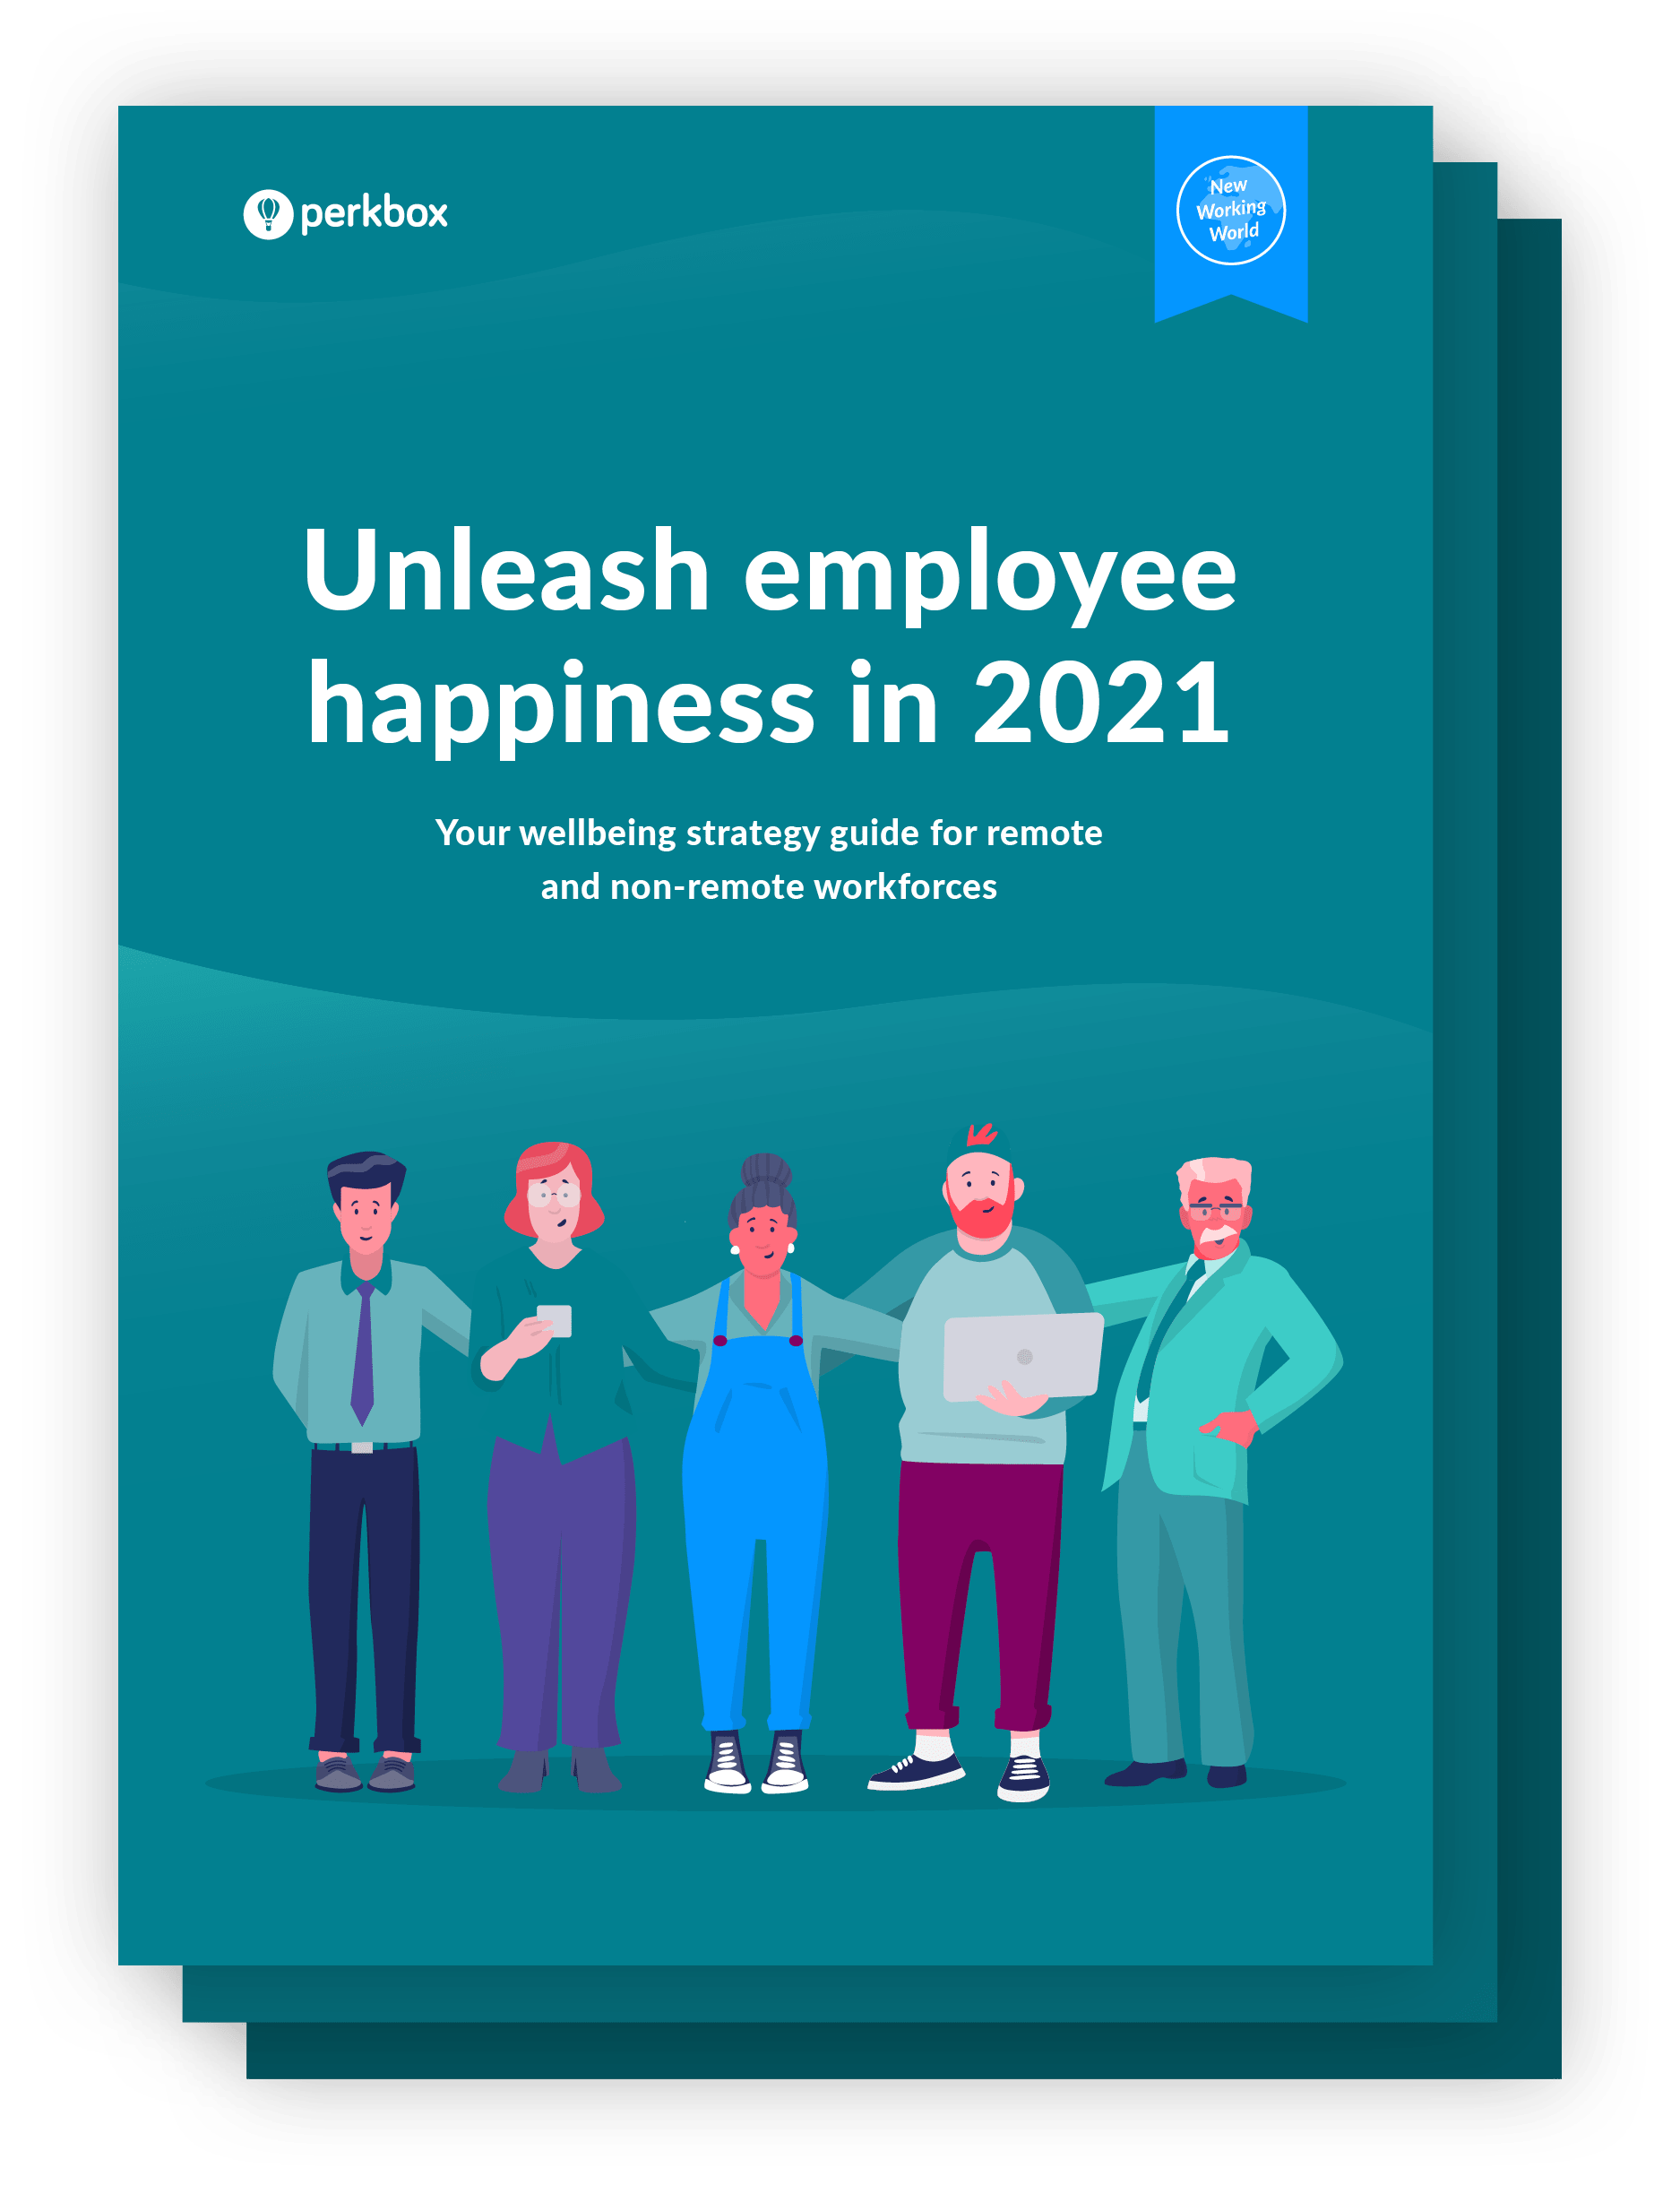 How to improve employee happiness in 2021